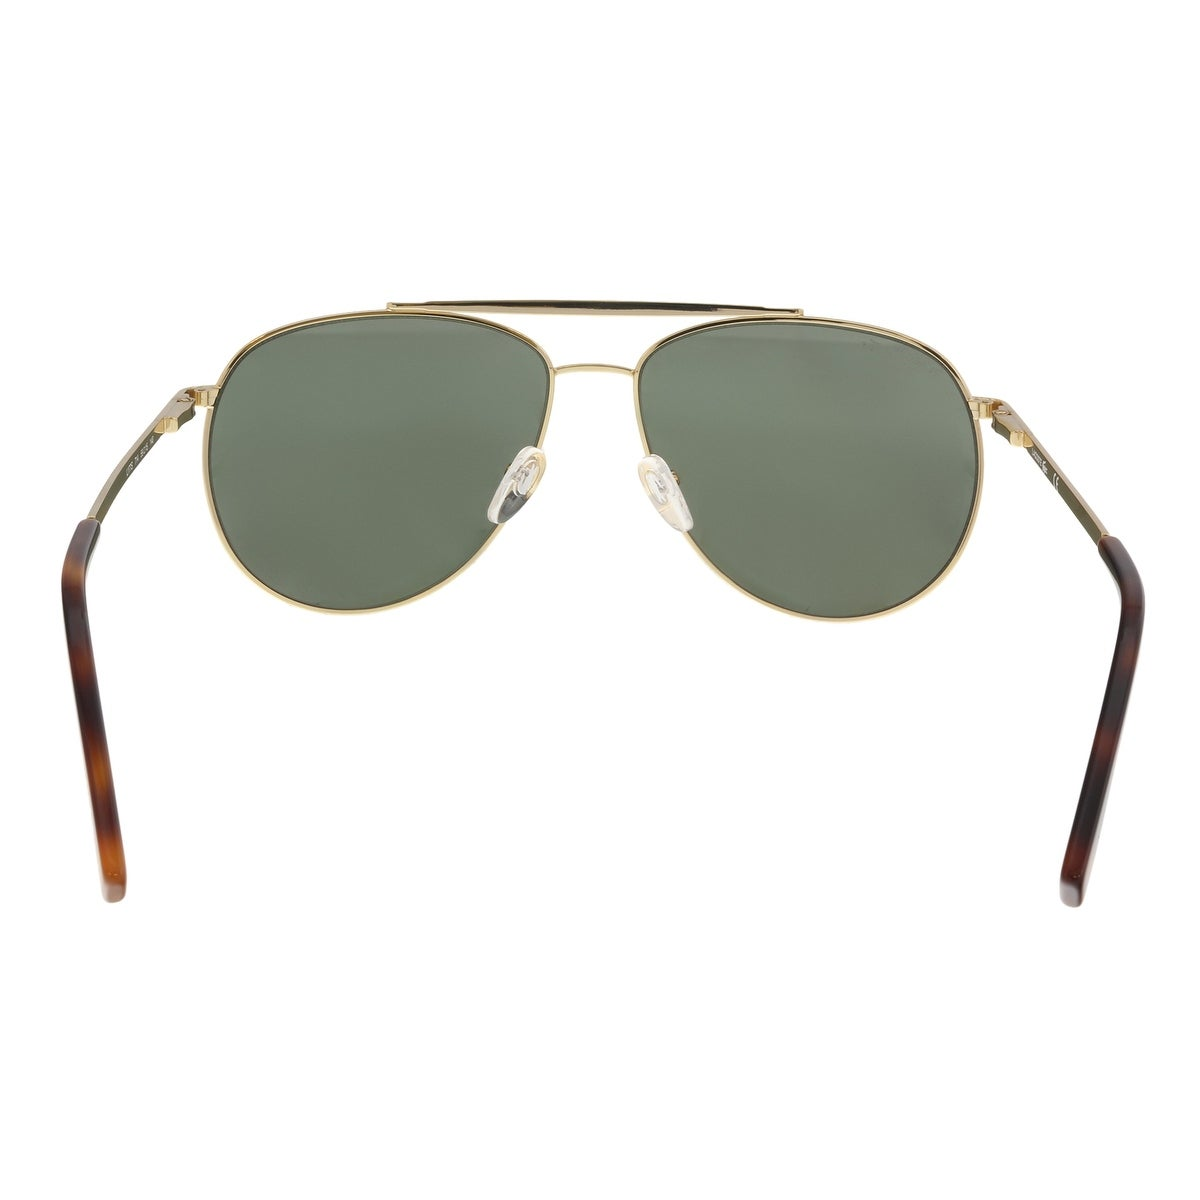 4be10889aa4 Shop Lacoste L177S 714 Gold Aviator Sunglasses - 59-15-140 - Free Shipping  Today - Overstock - 20005147